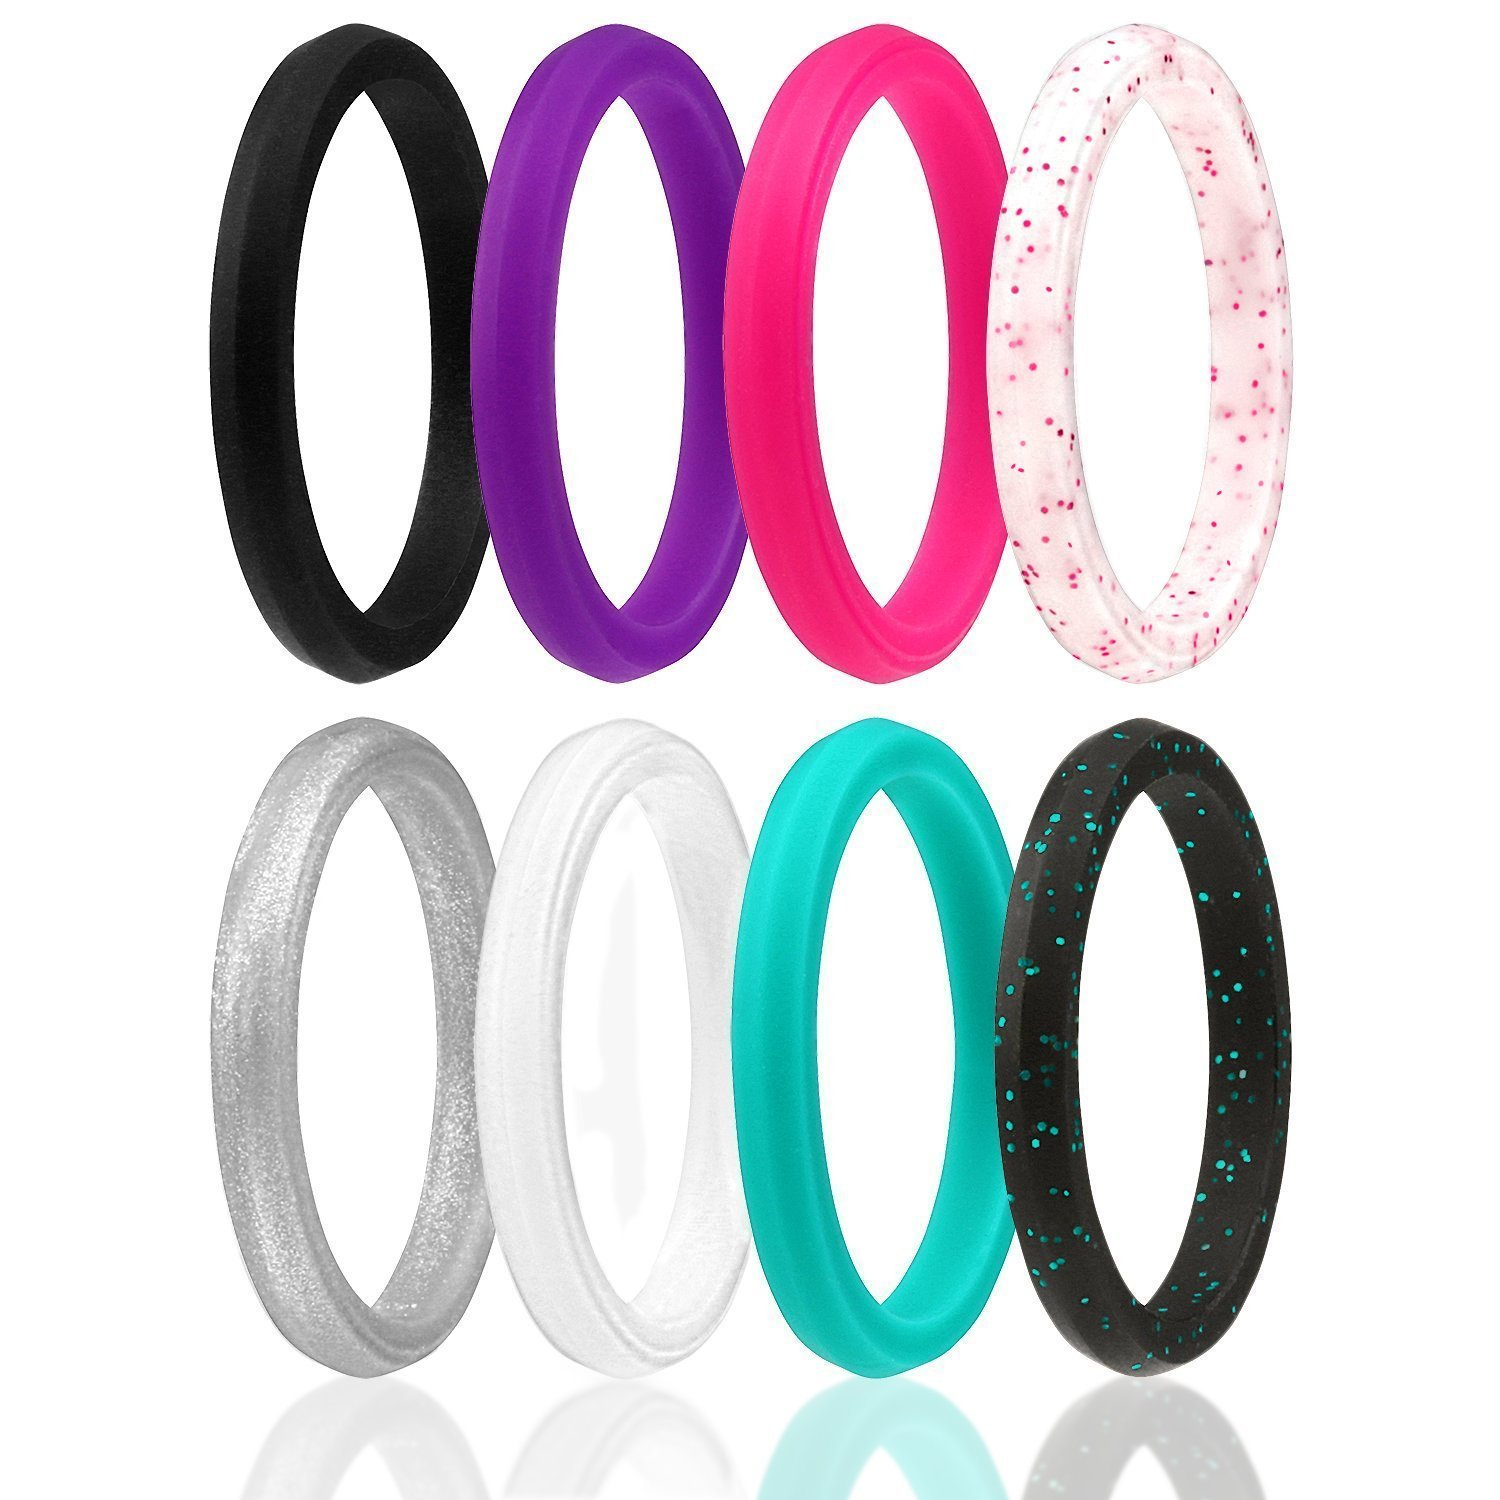 ROQ Silicone Wedding Ring for Women, Set of 8 Thin Stackable Silicone Rubber Wedding Bands Point- Turquoise, Pink, Purple, Black, White, Silver, Black/Turquoise Glitter, White/Pink Glitter - Size 7